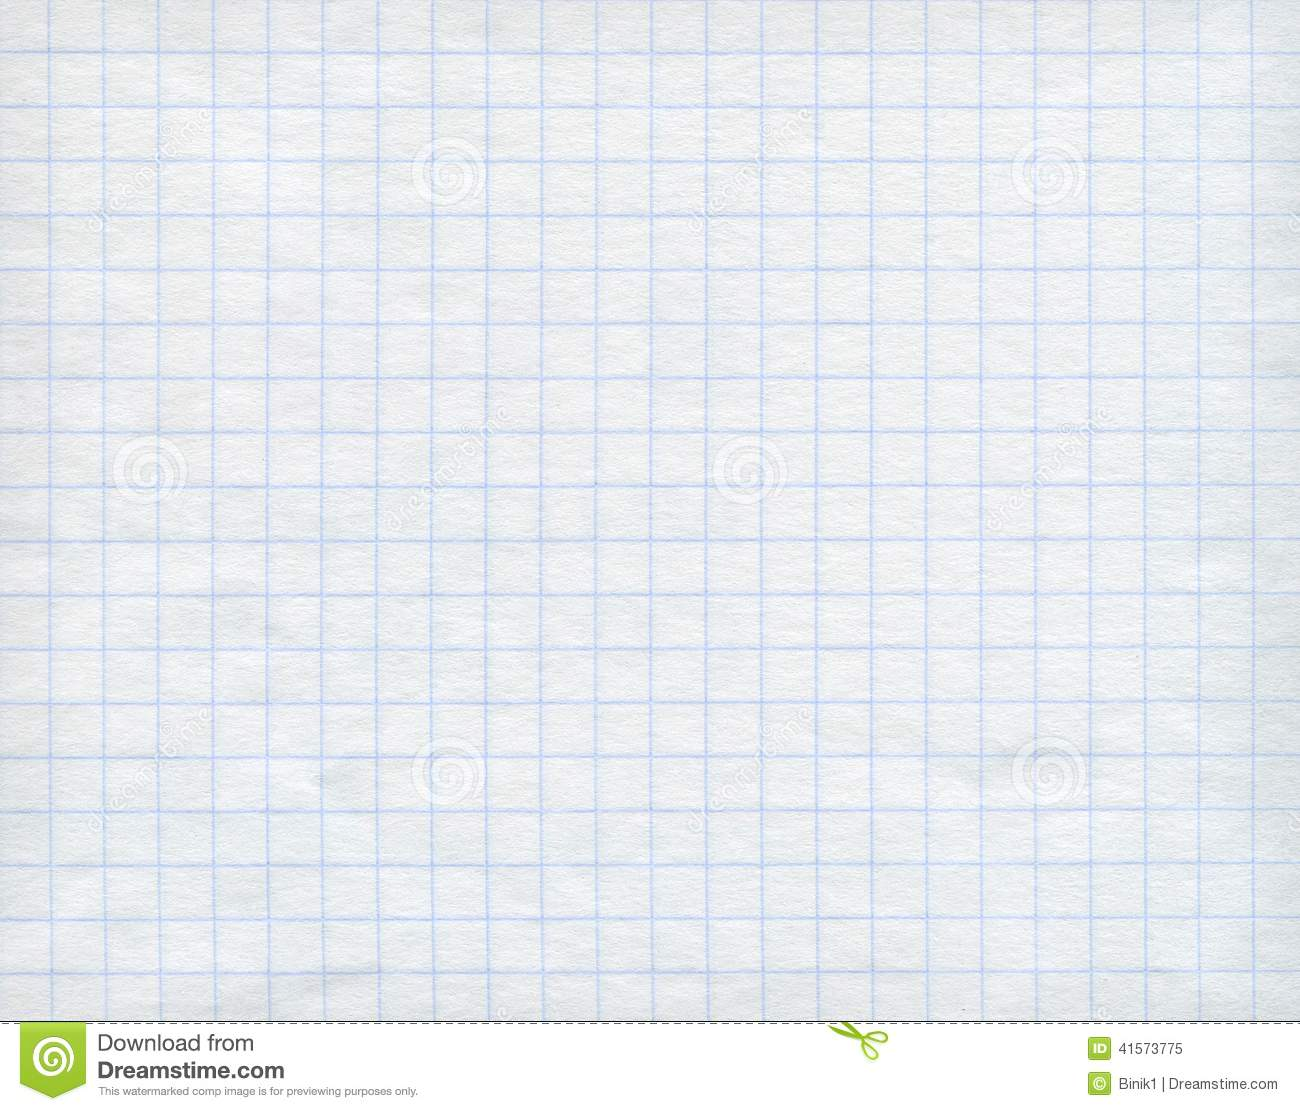 blue graph paper on white background  stock image